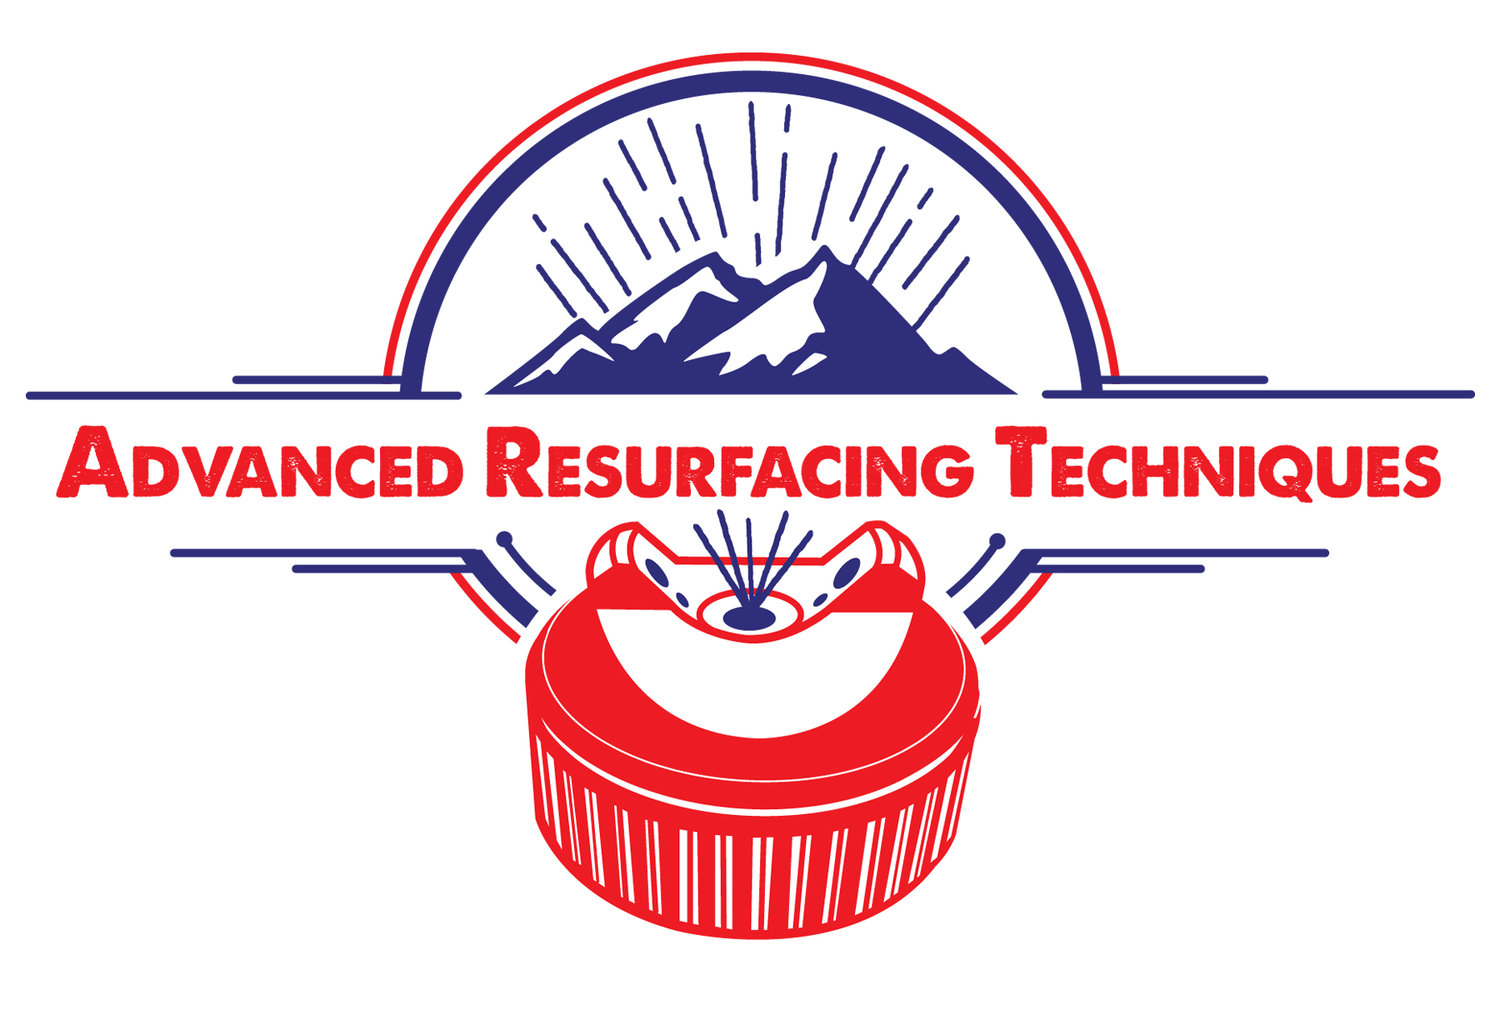 Advanced Resurfacing Techniques